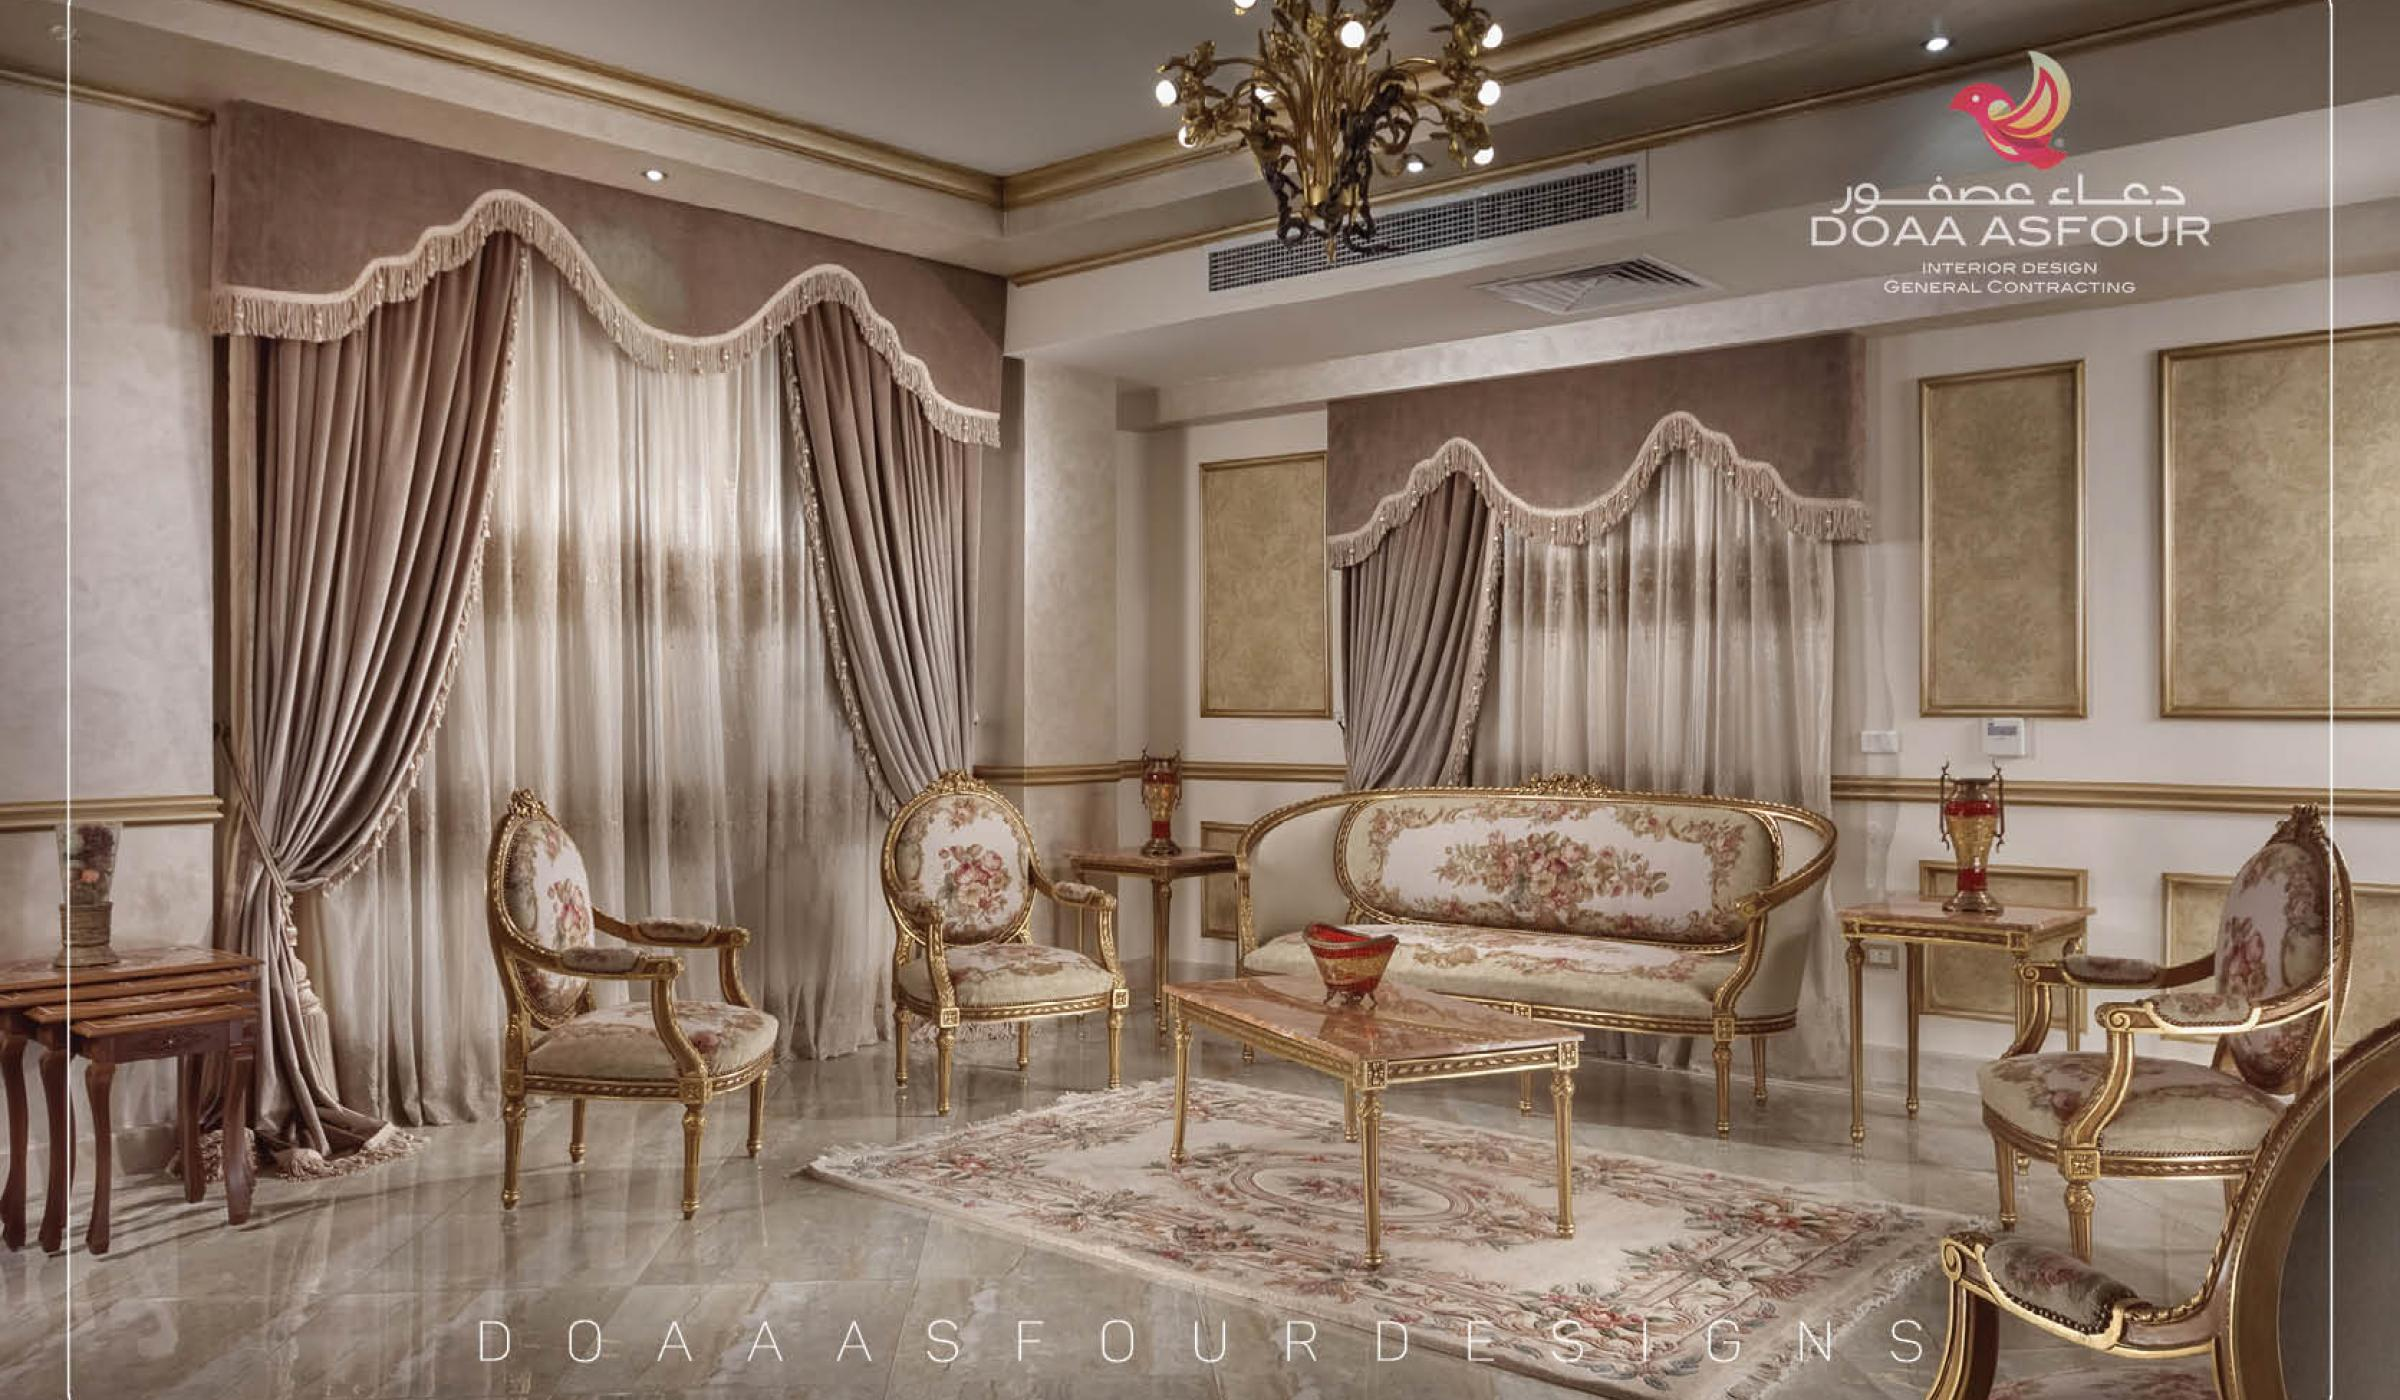 Make Your Vision Come True Design Dream Rooms Within Budget And